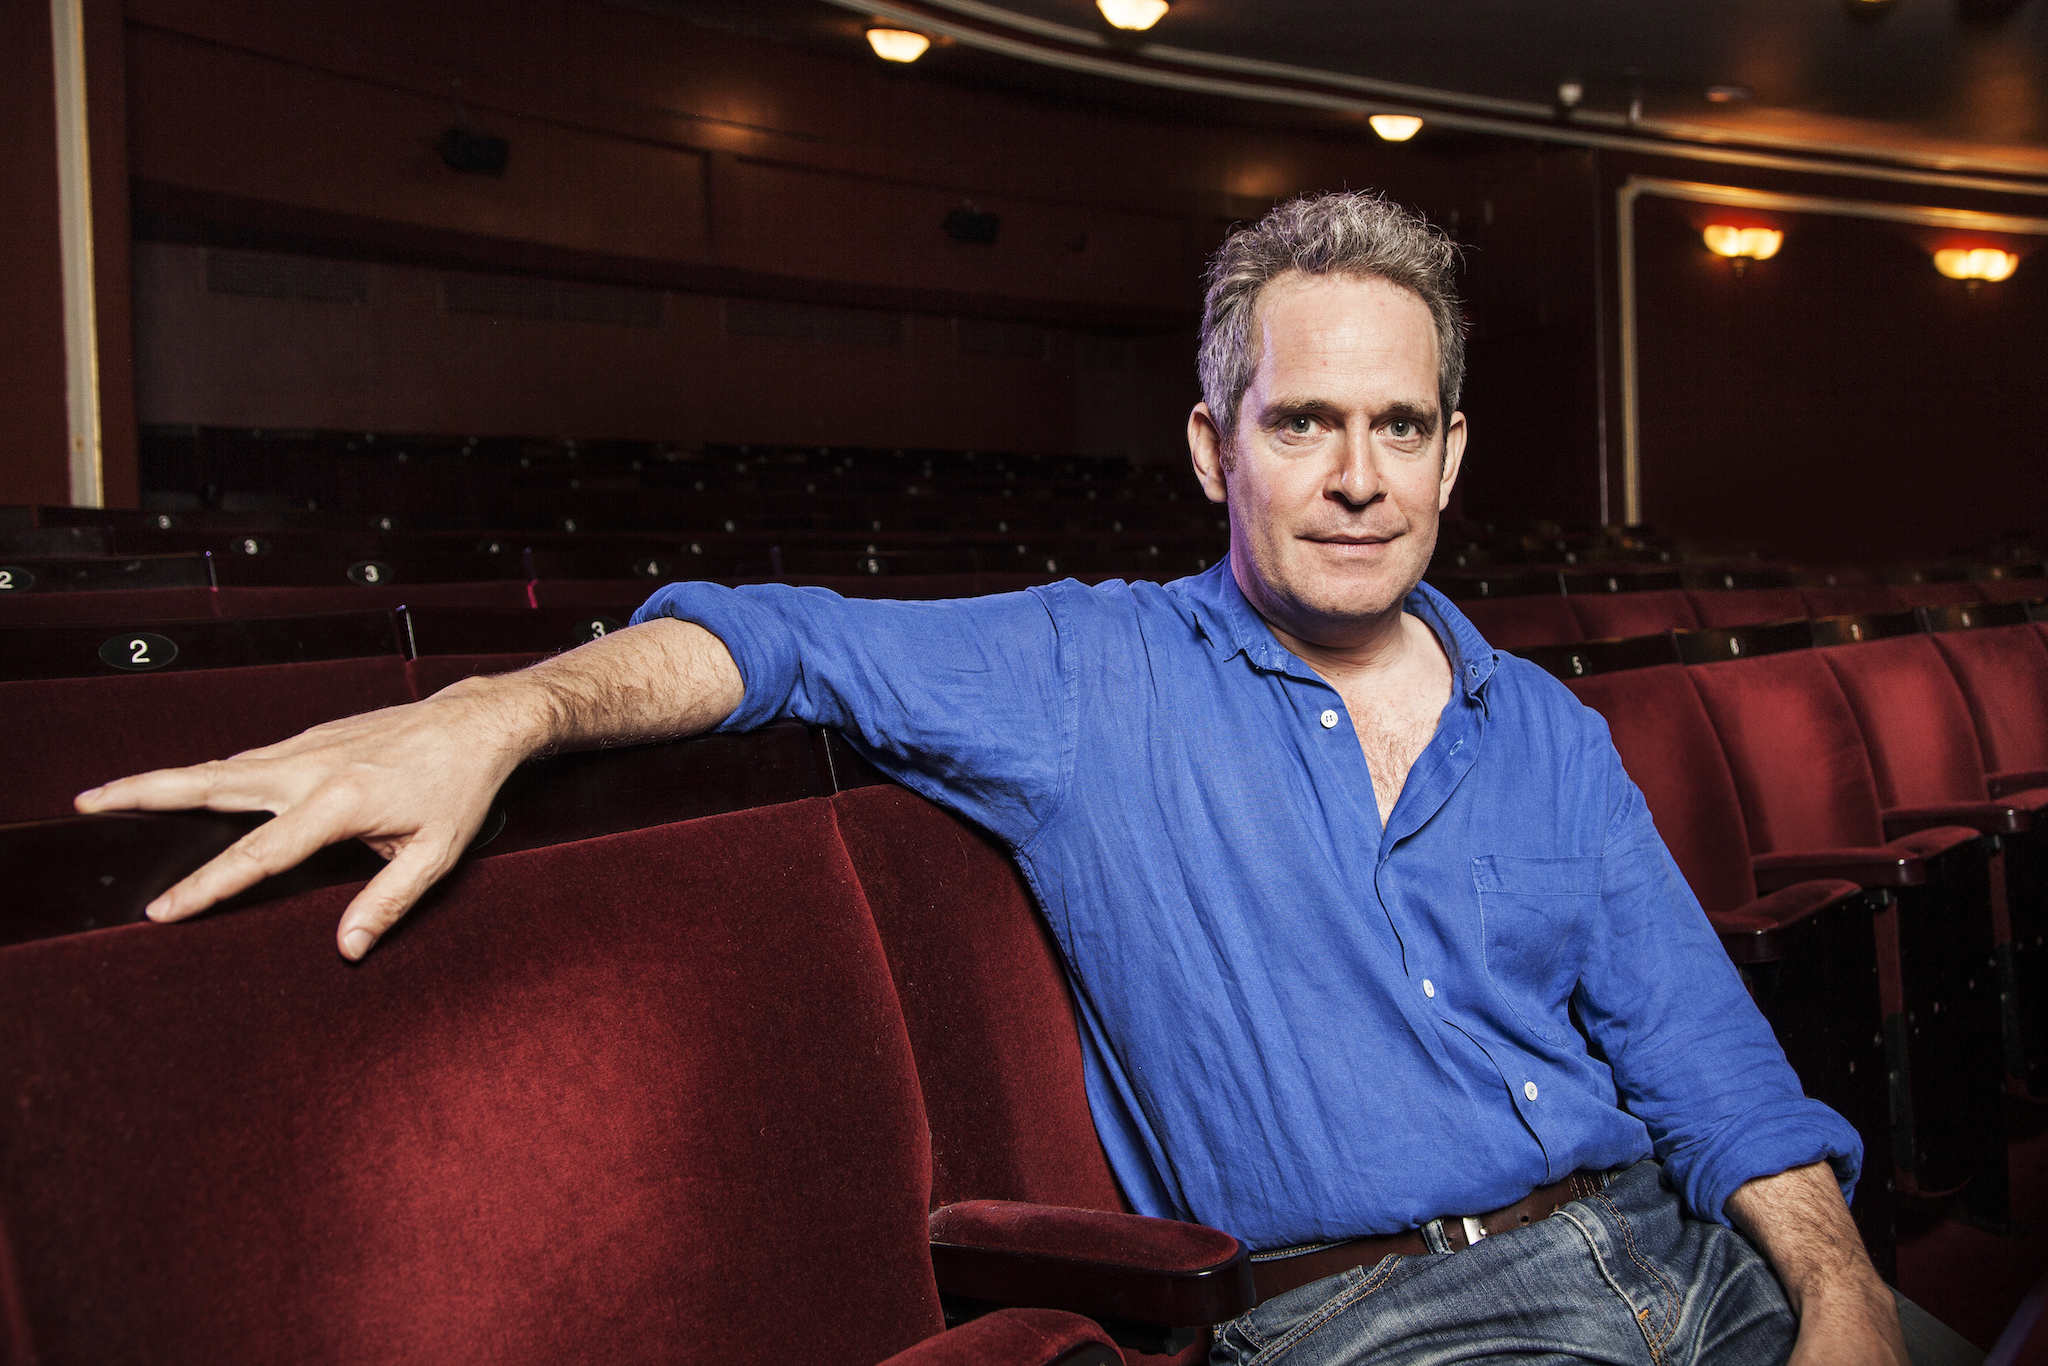 'Dick-swingingly difficult': Tom Hollander on his West End debut